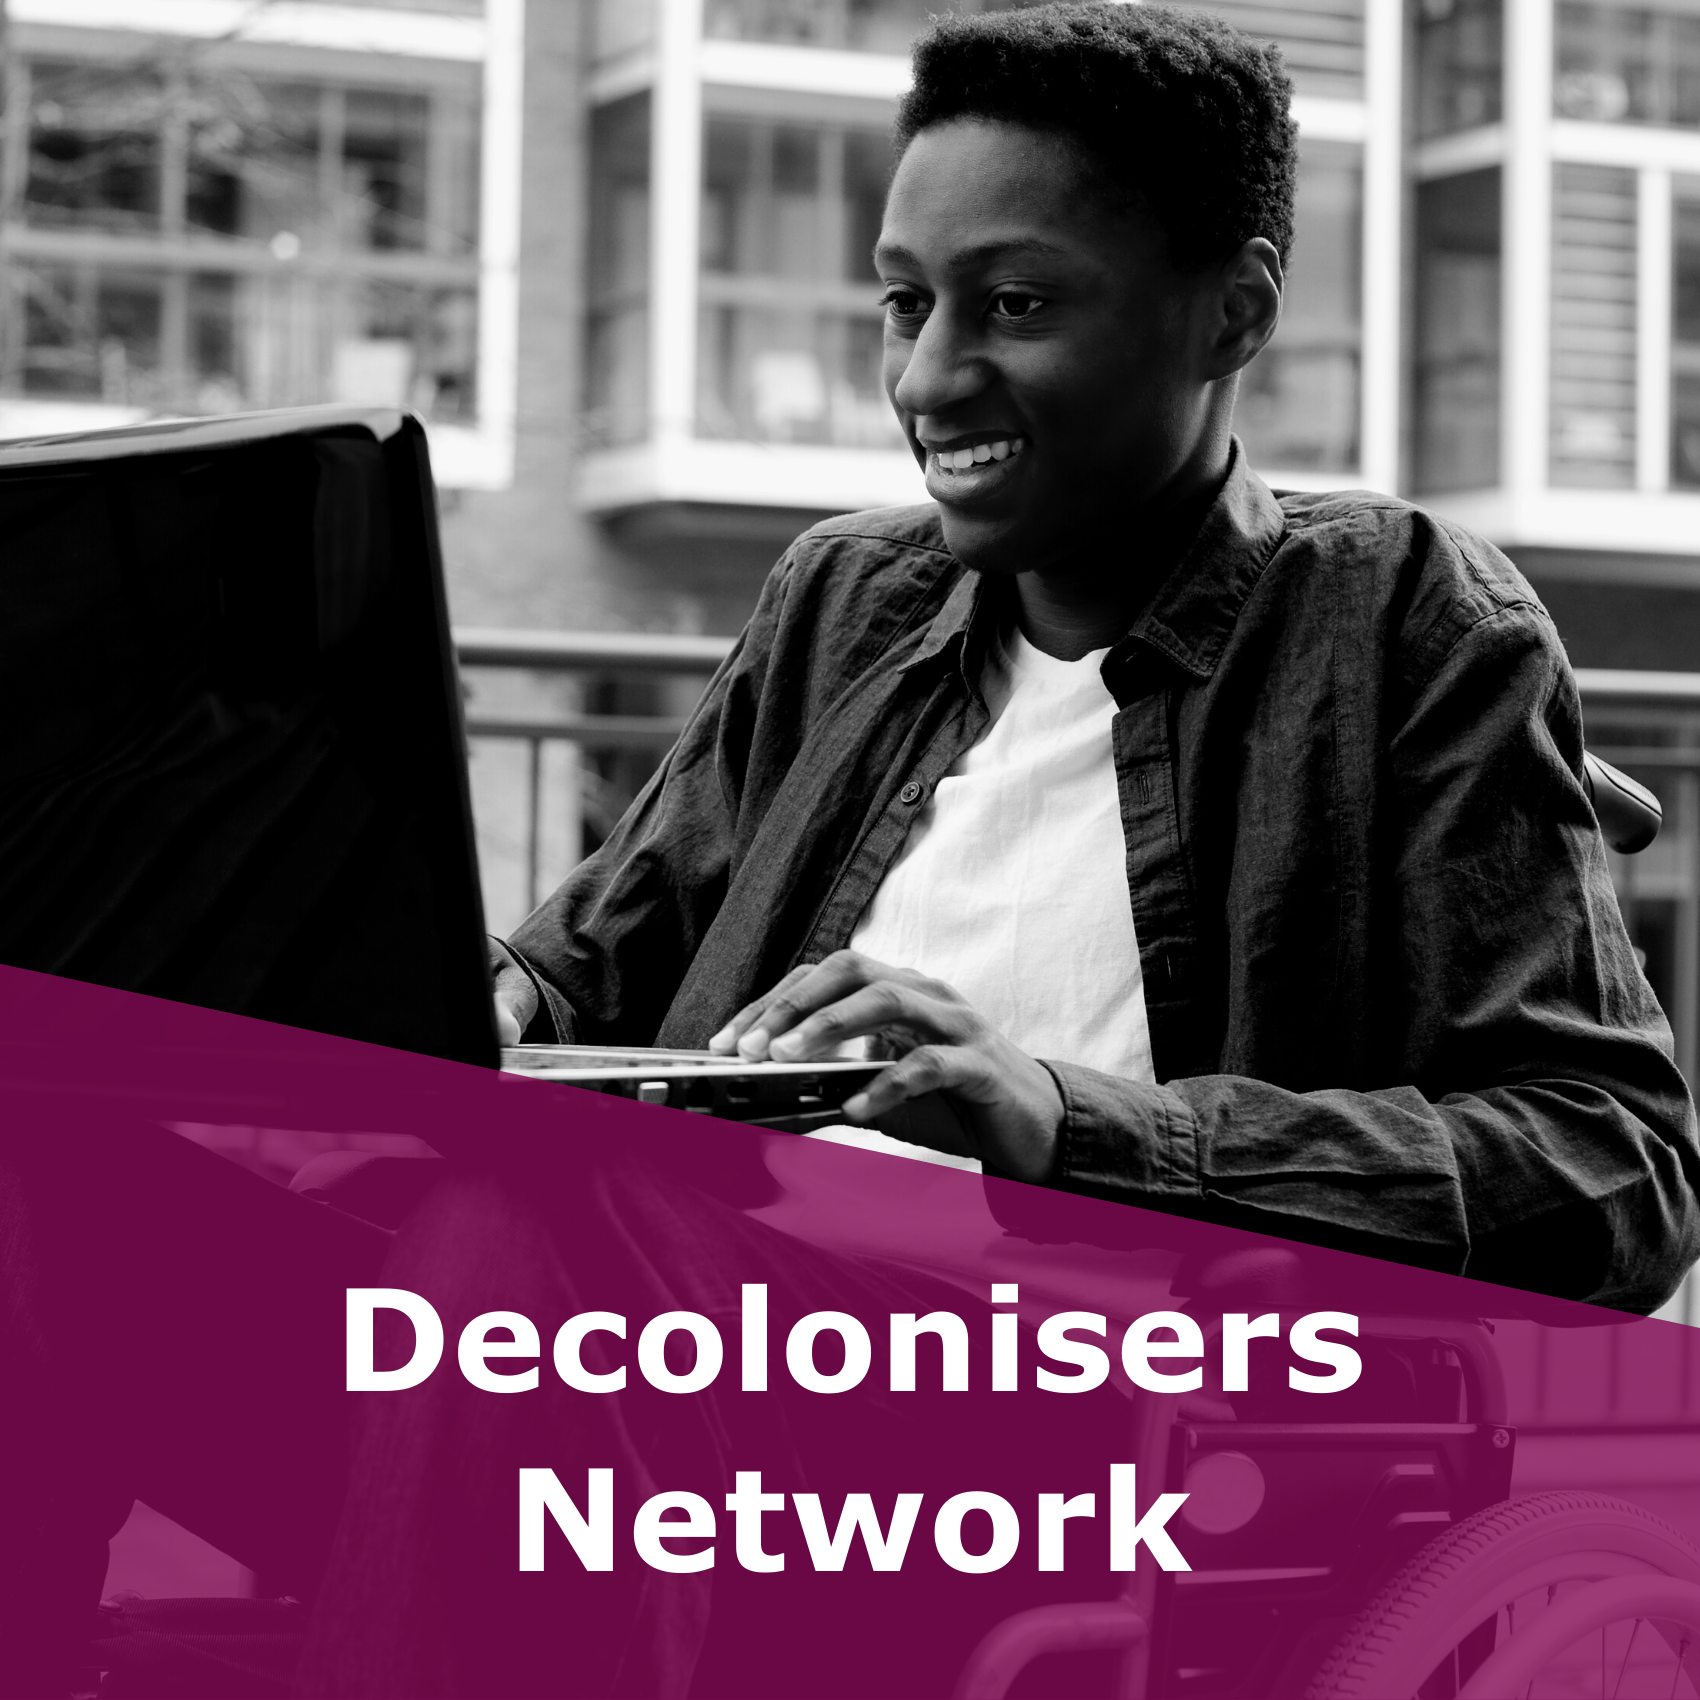 Decolonisers Network